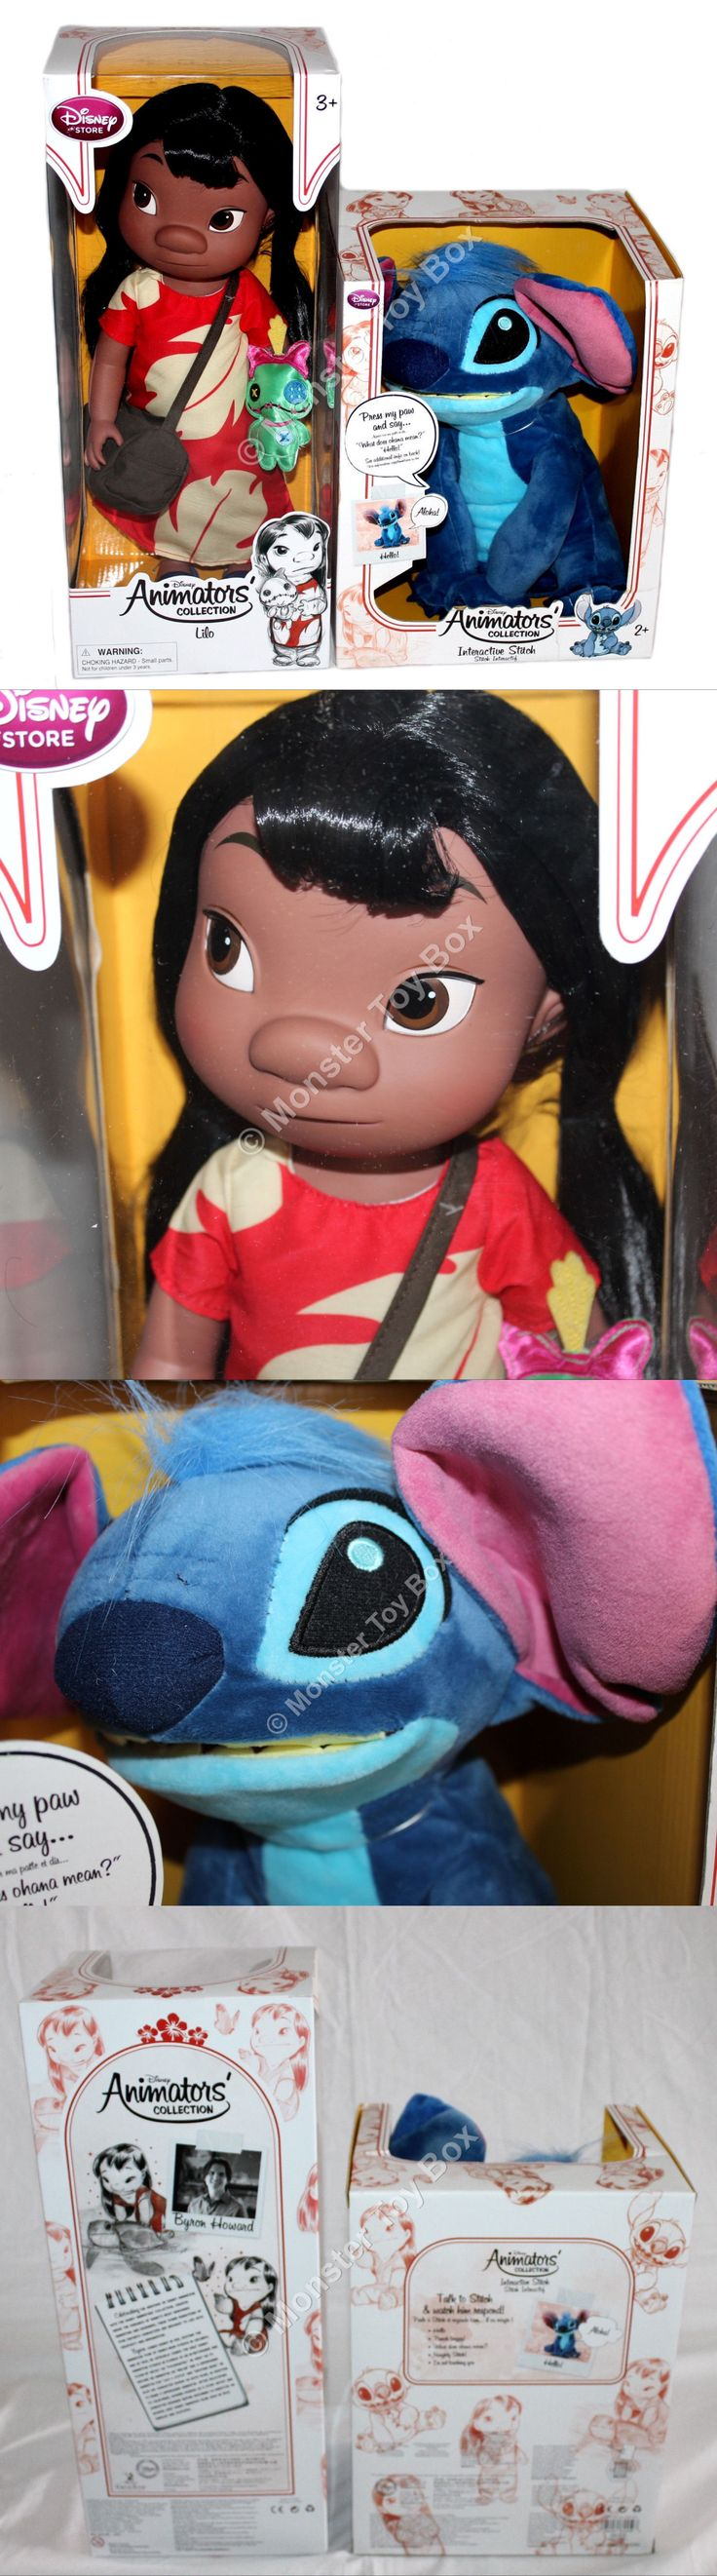 Lilo and Stitch 44035: 16 Animator Toddler Lilo Doll And Interactive Stitch Disney Store Lilo And Stitch -> BUY IT NOW ONLY: $72 on eBay!